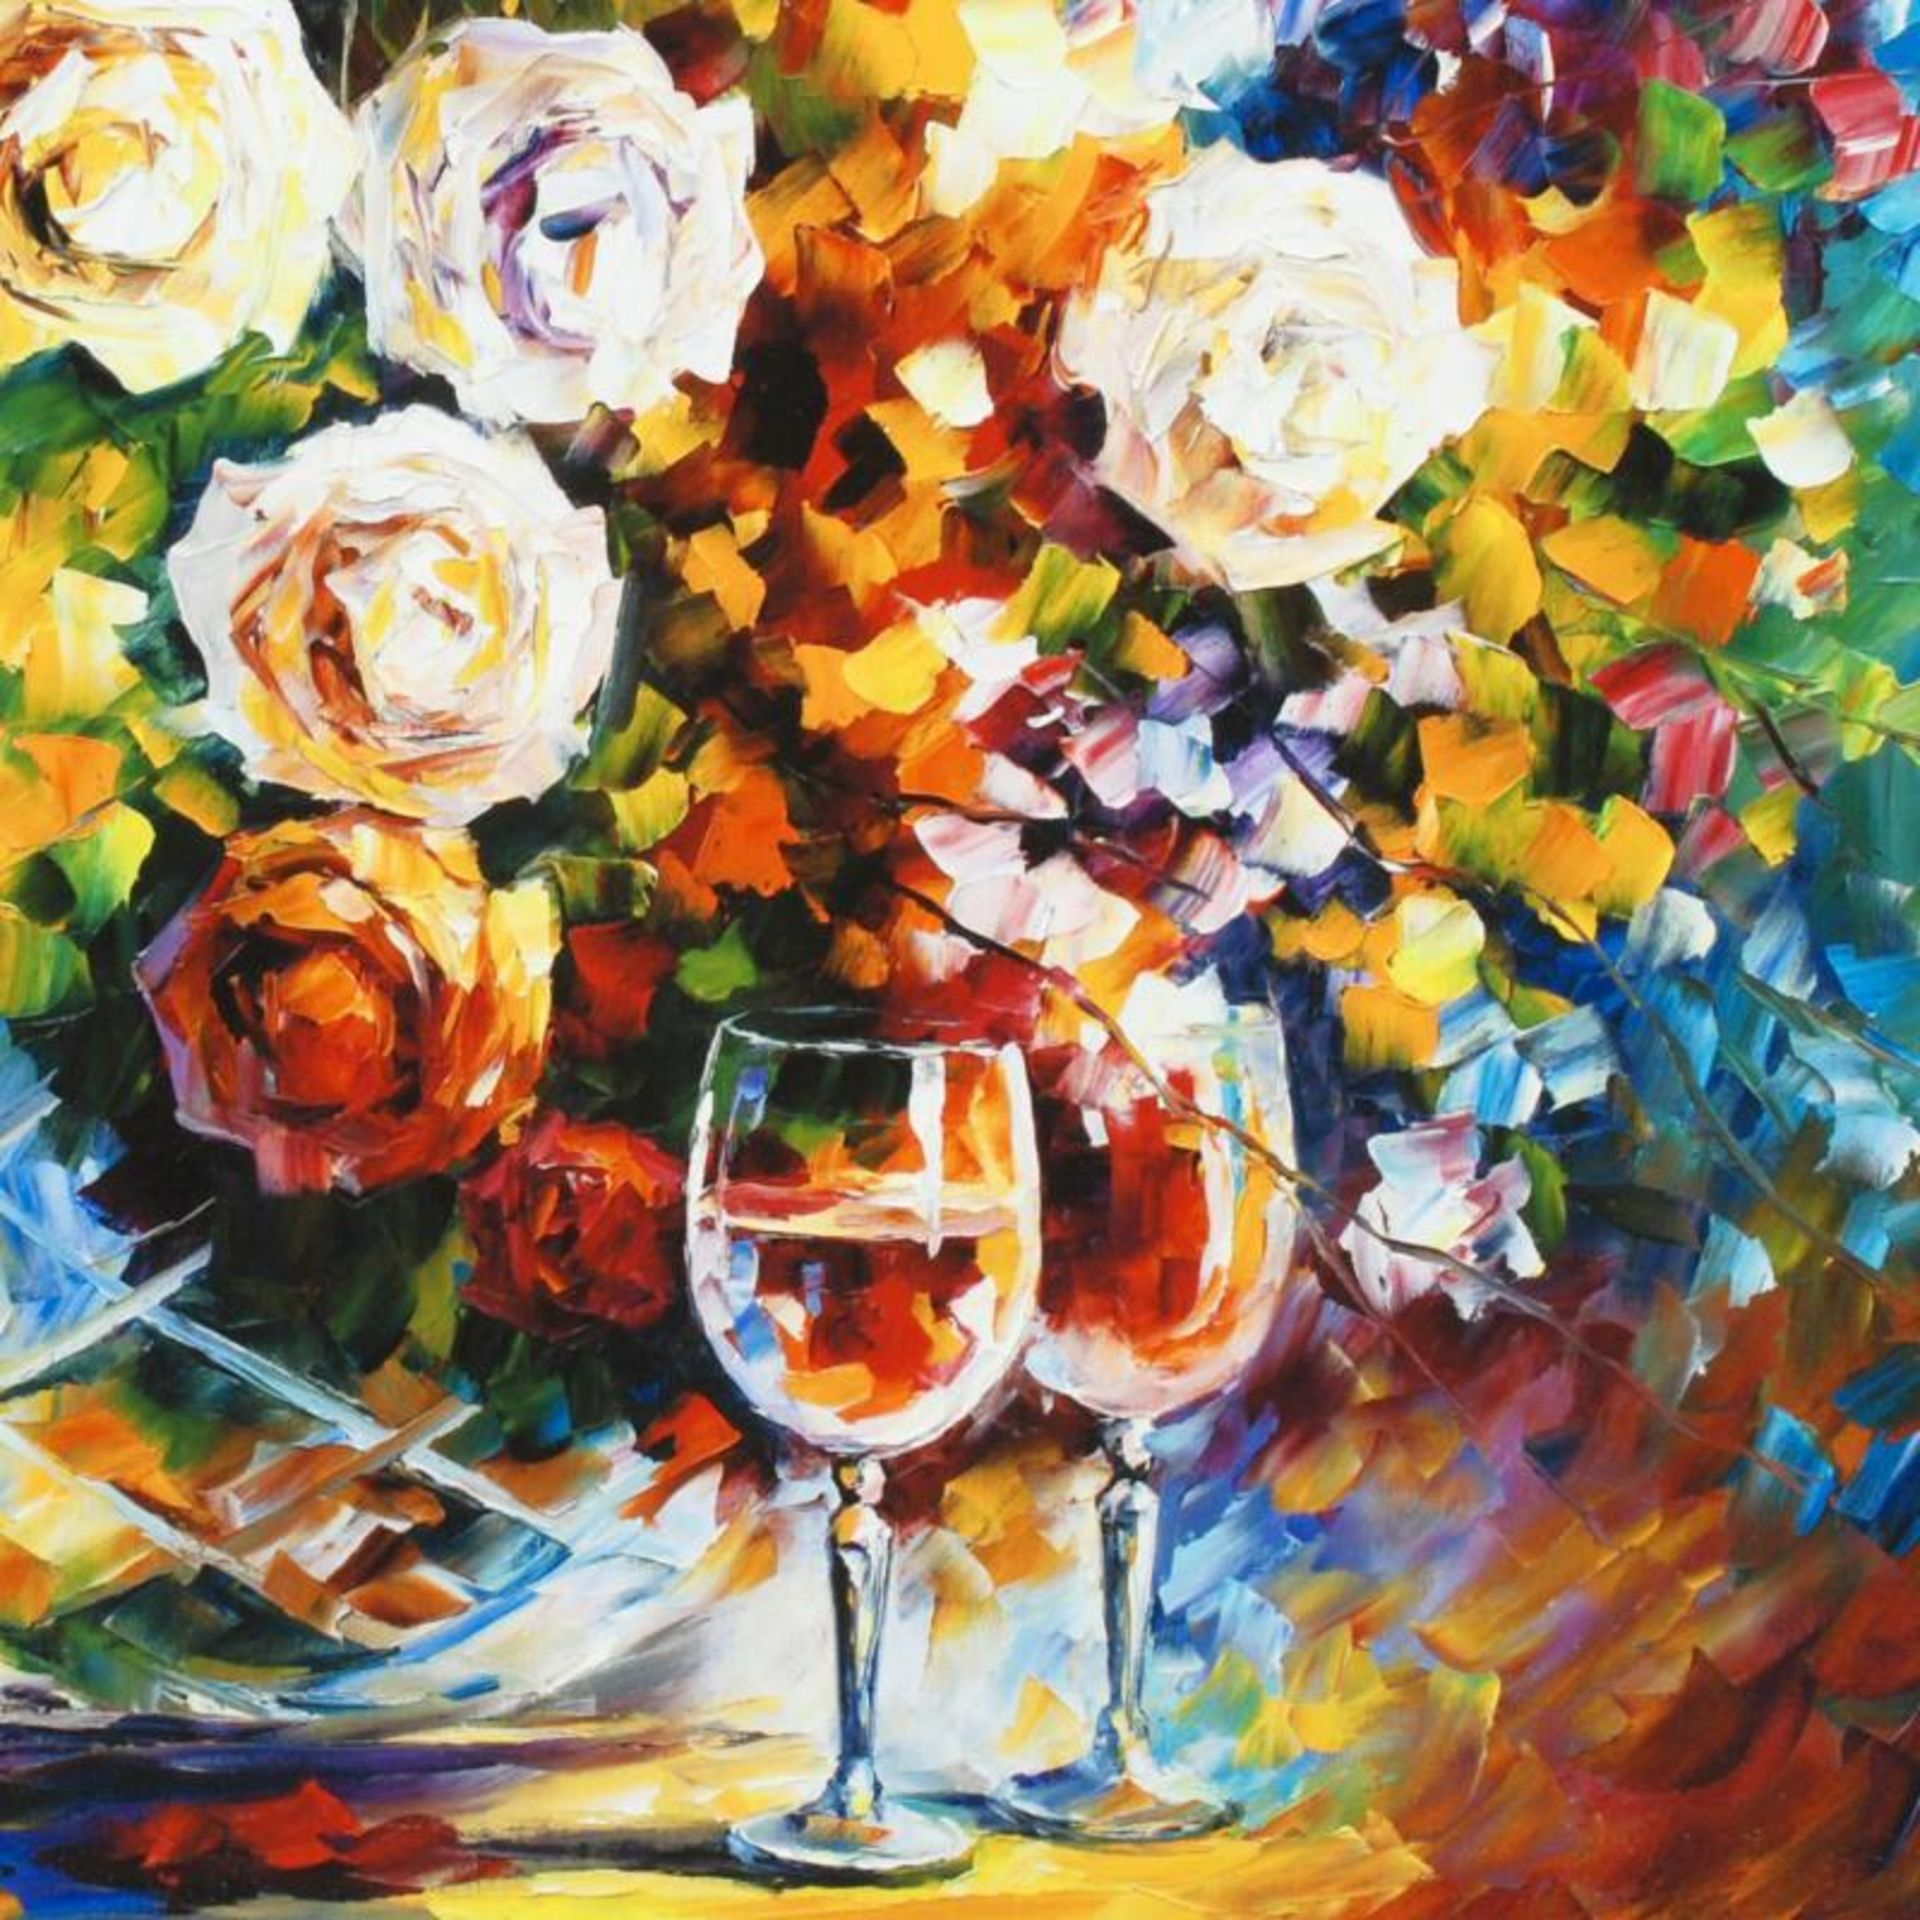 """Leonid Afremov (1955-2019) """"Roses and Wine"""" Limited Edition Giclee on Canvas, Nu - Image 2 of 3"""